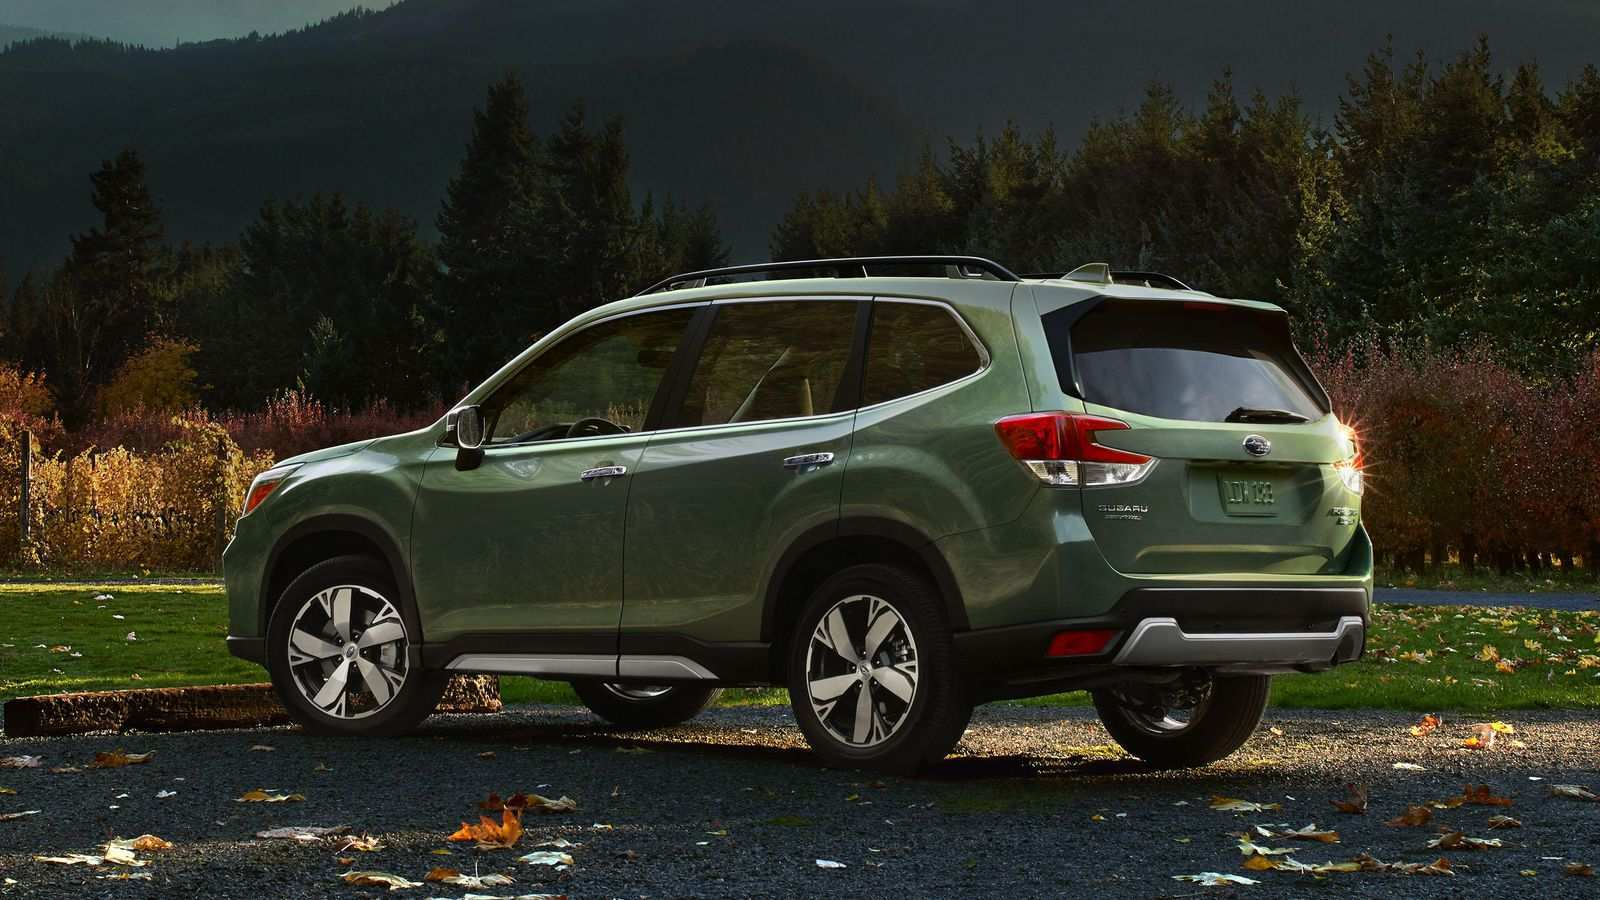 27 New The 2019 Subaru Forester Concept for The 2019 Subaru Forester